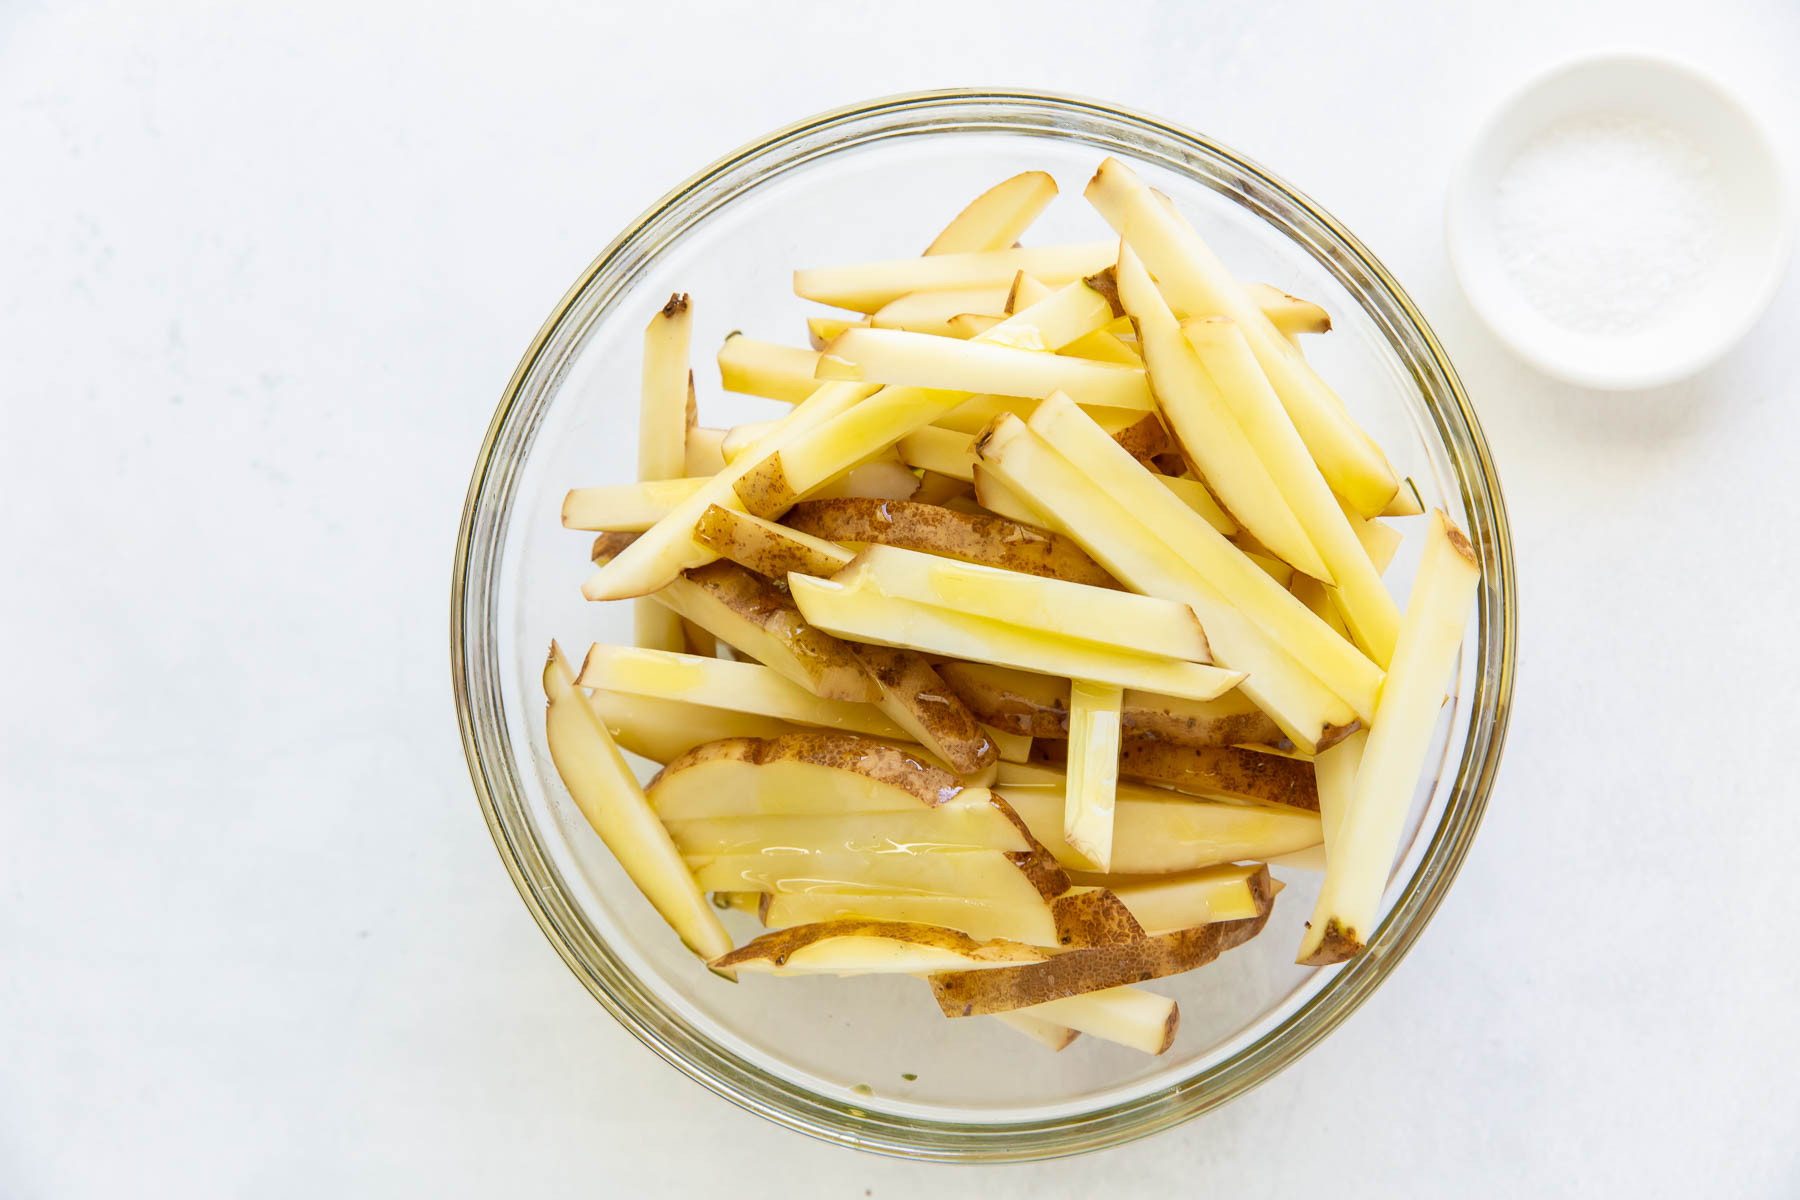 french fries in a glass bowl drizzled with olive oil